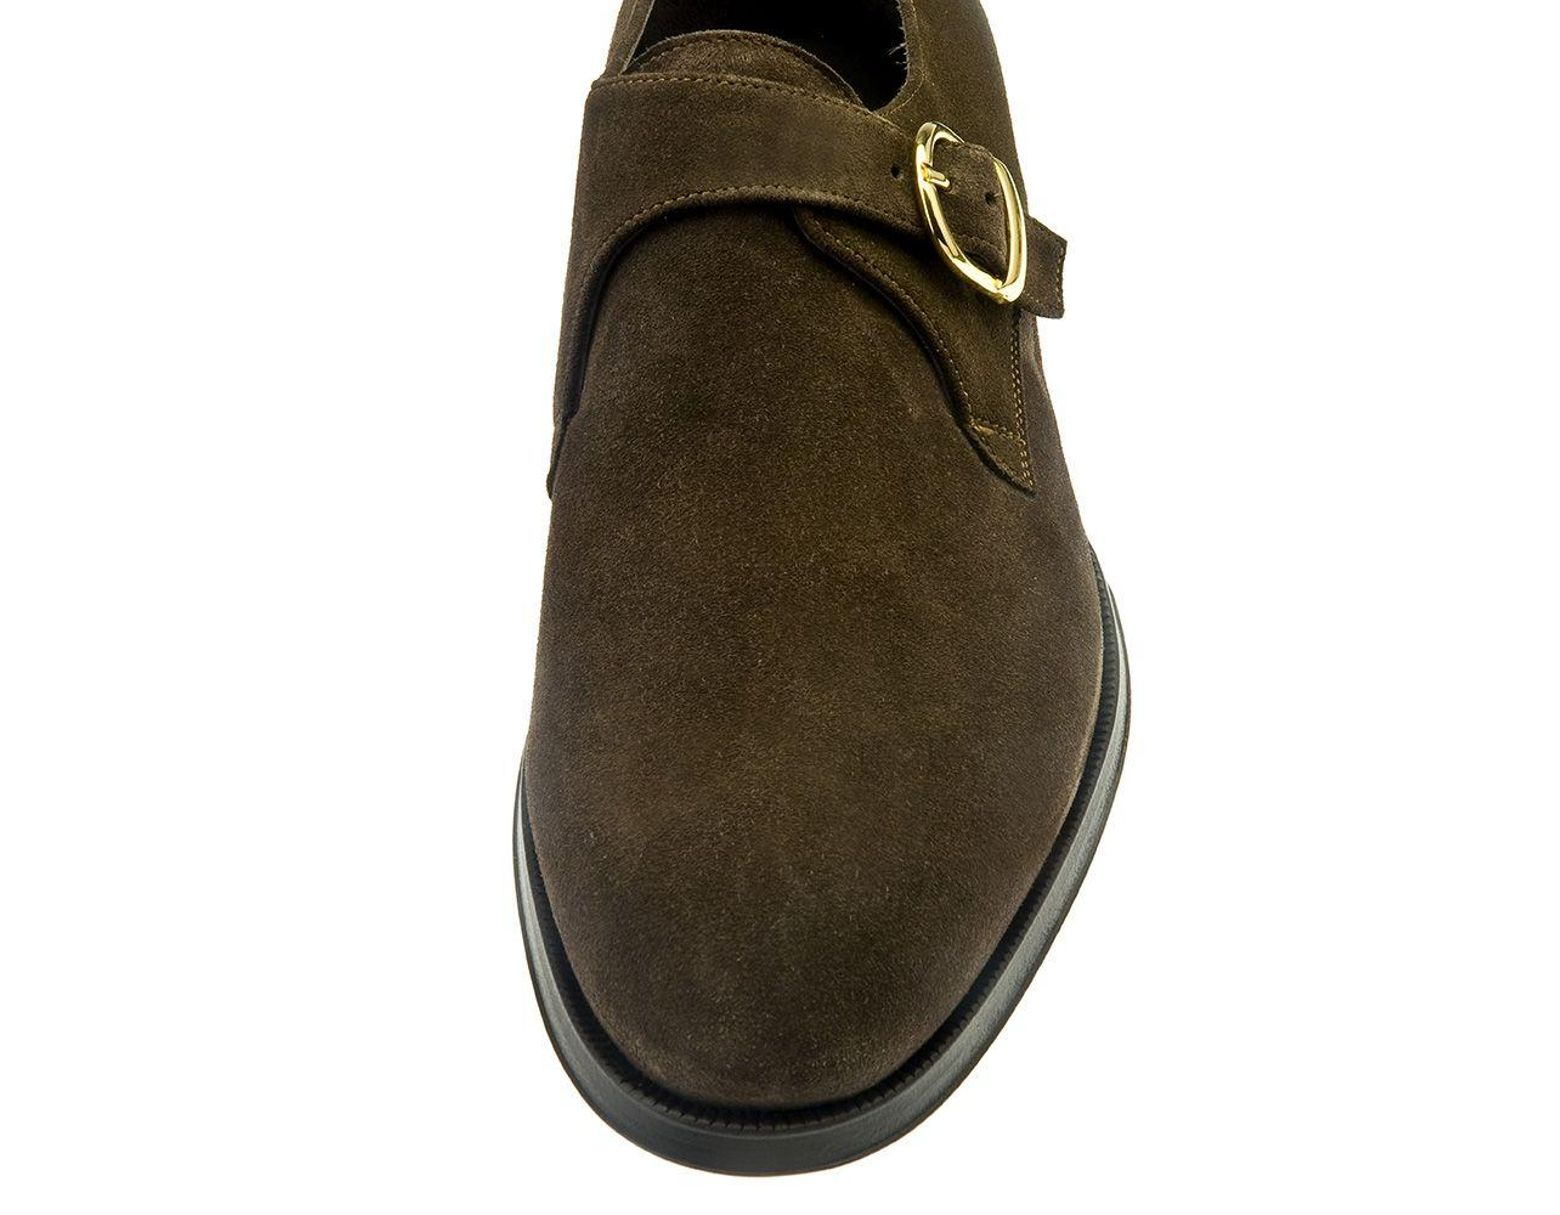 5c011c1b9e41 Lyst - Belsire Brown Rodolfo Suede Single Buckle Monk Strap Shoes in Brown  for Men